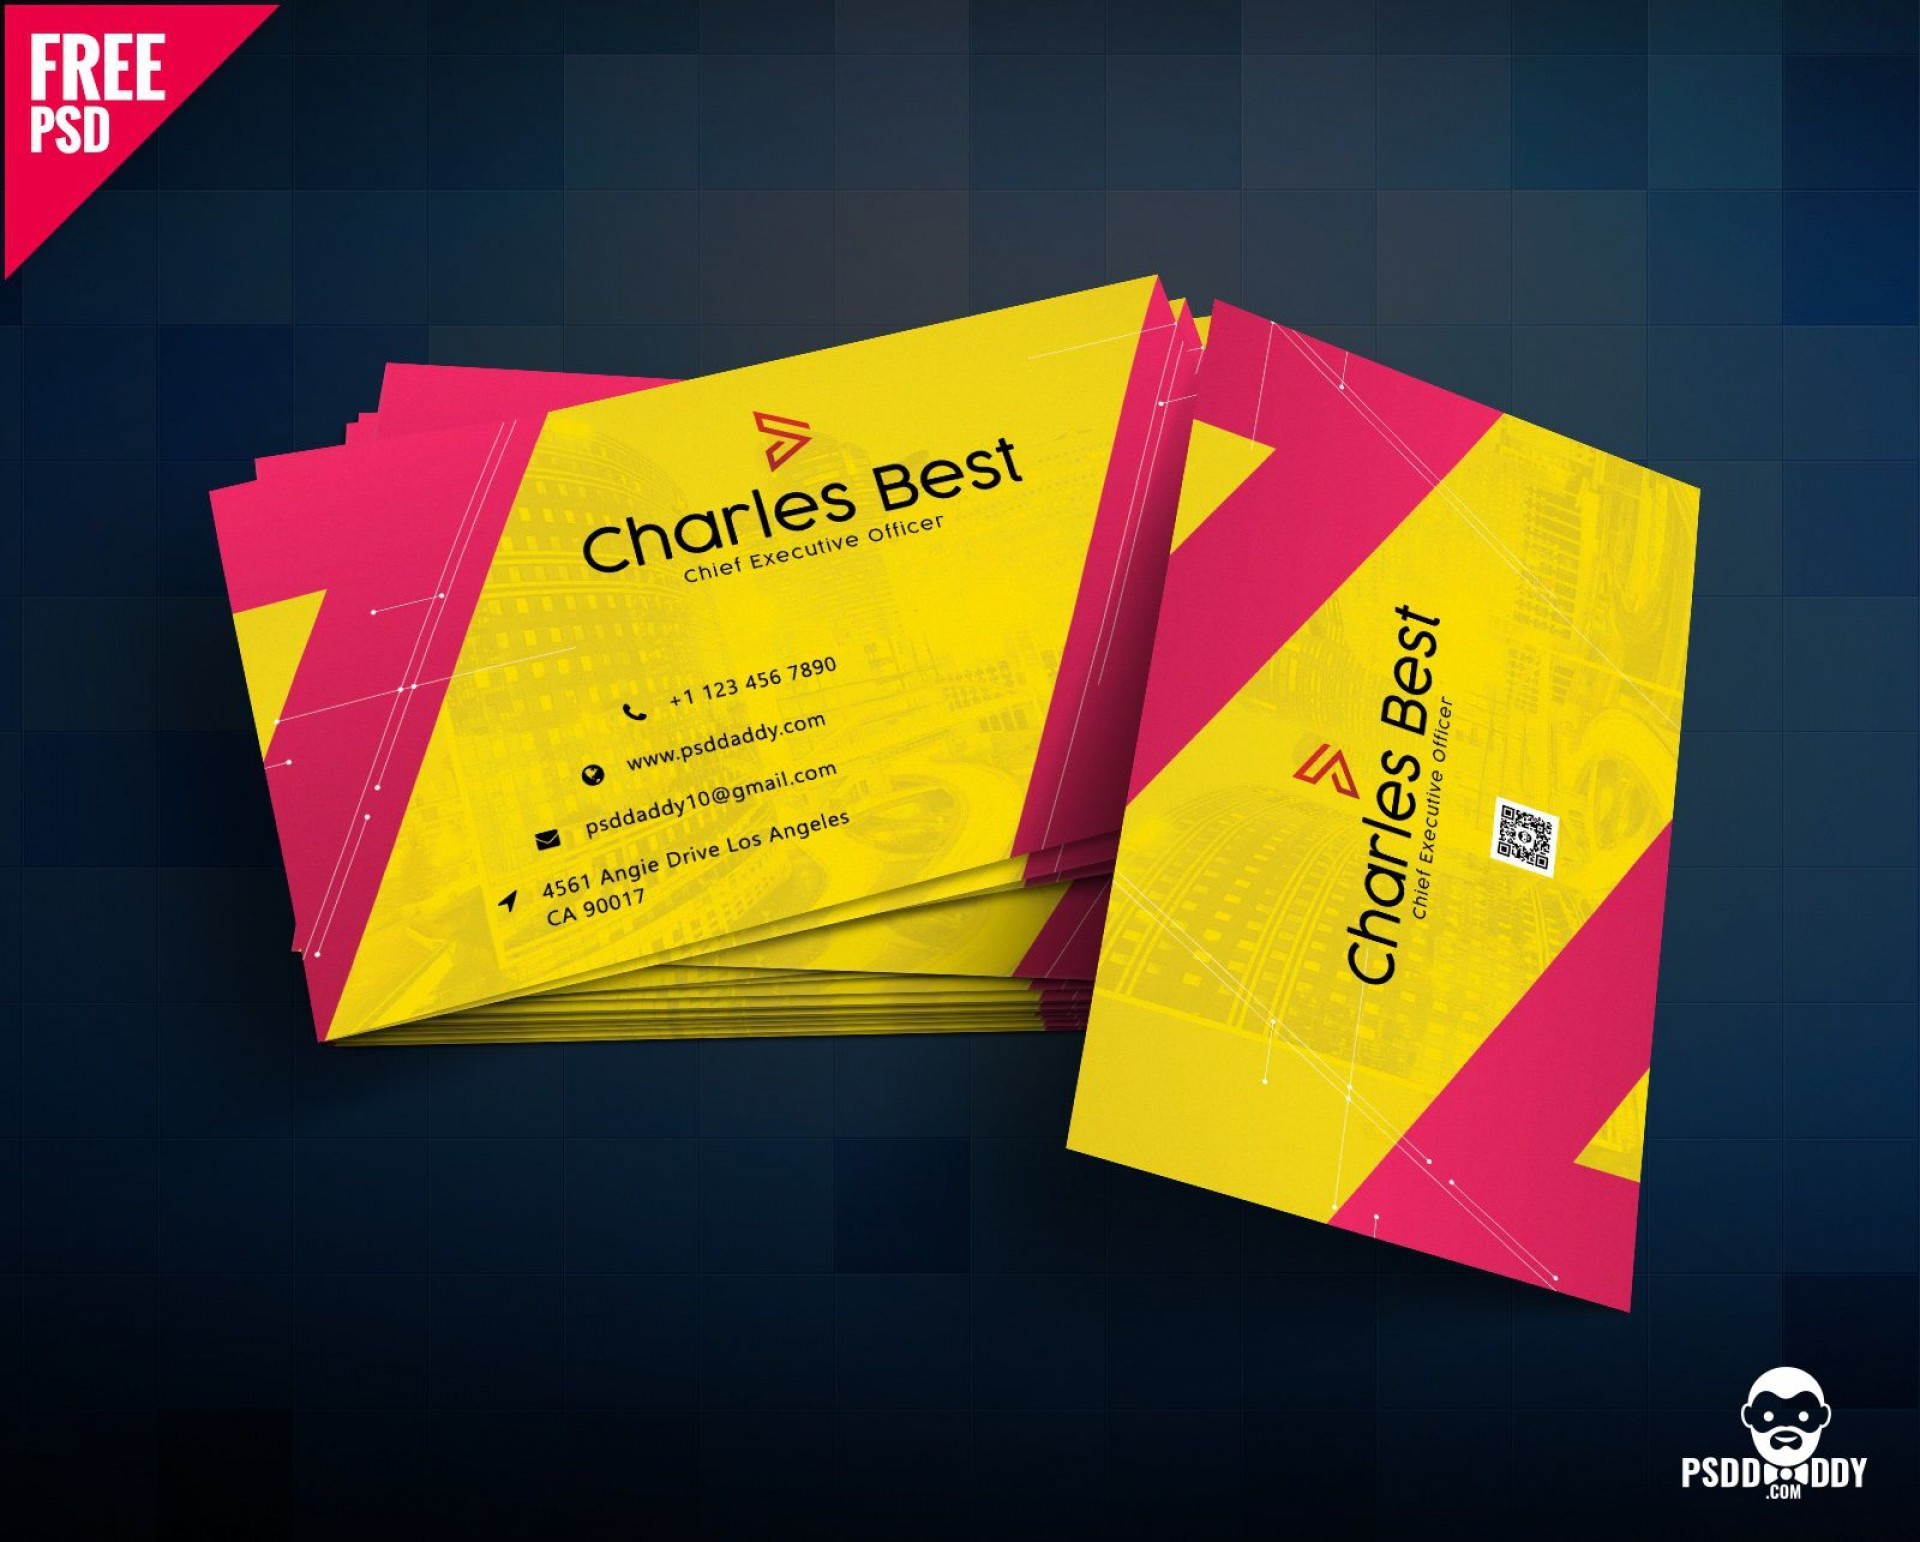 006 Stirring Free Photoshop Busines Card Template Concept  Blank Download Adobe Psd Mockup1920